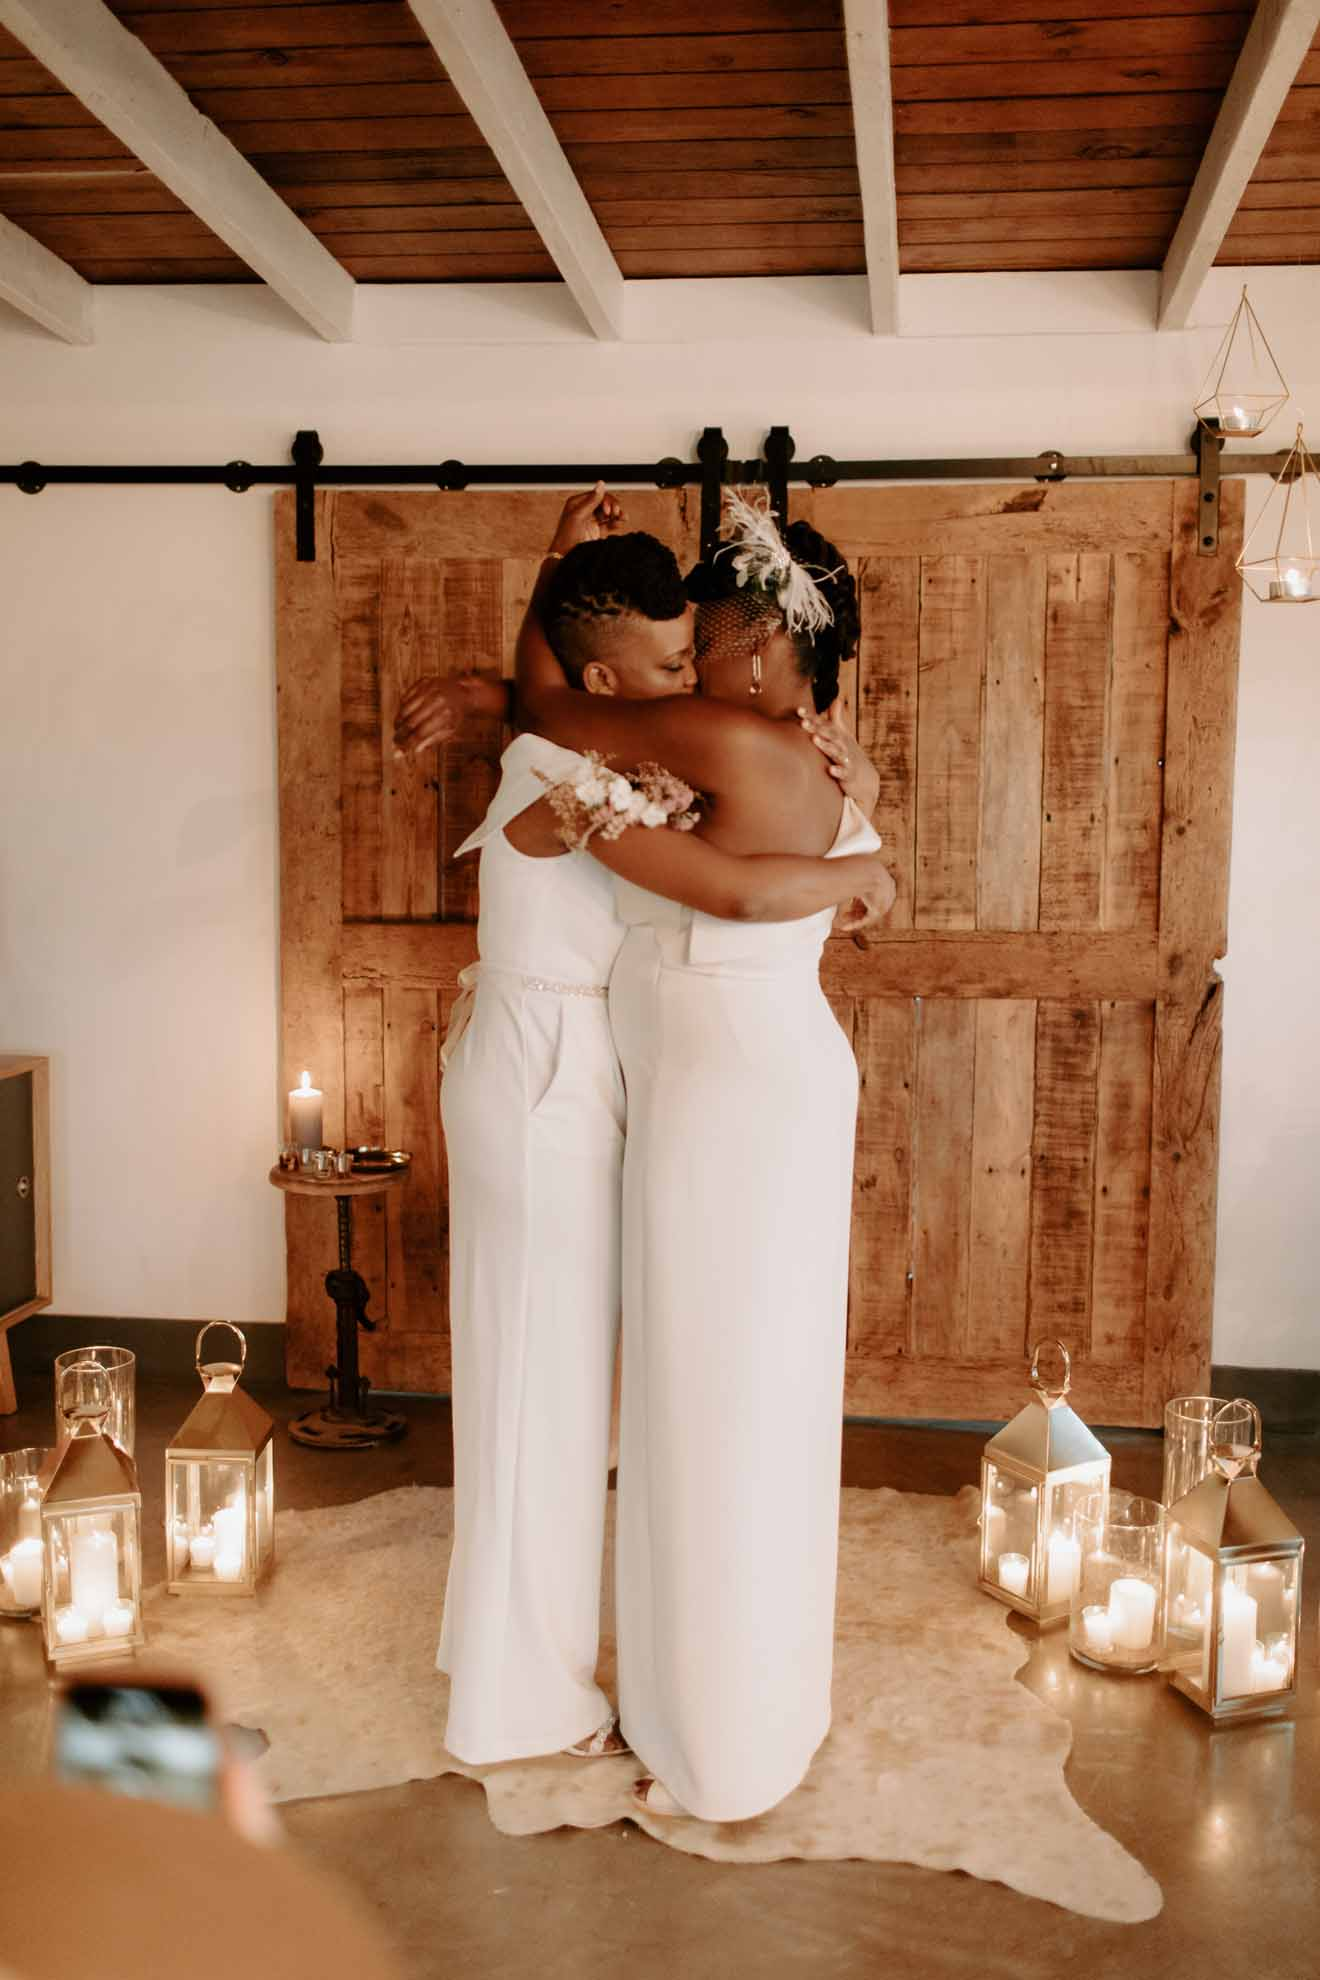 Tree Elopement Shelby Ayn Photography lesbian gay same-sex pregnant black American California couple wedding Dancing With Her magazine online directory (1)